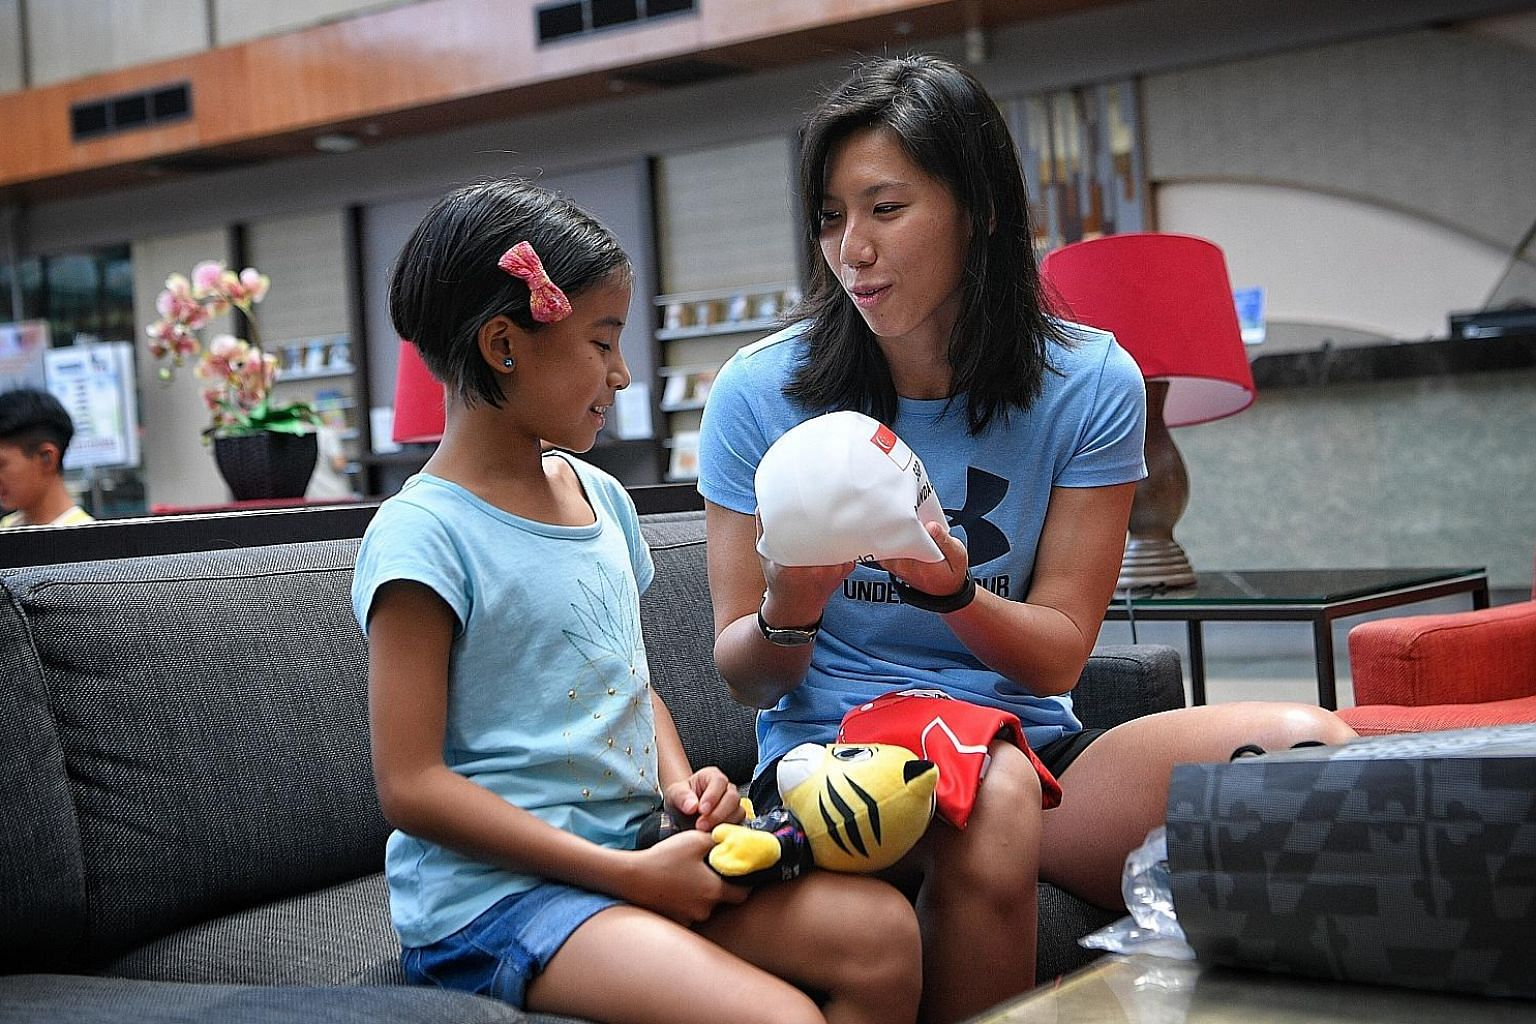 Amanda Lim, who has won every SEA Games 50m freestyle gold since 2009, giving Caitlin a gift bag containing a signed Rimau soft toy, swim cap and a Games jersey with a handwritten message on it.